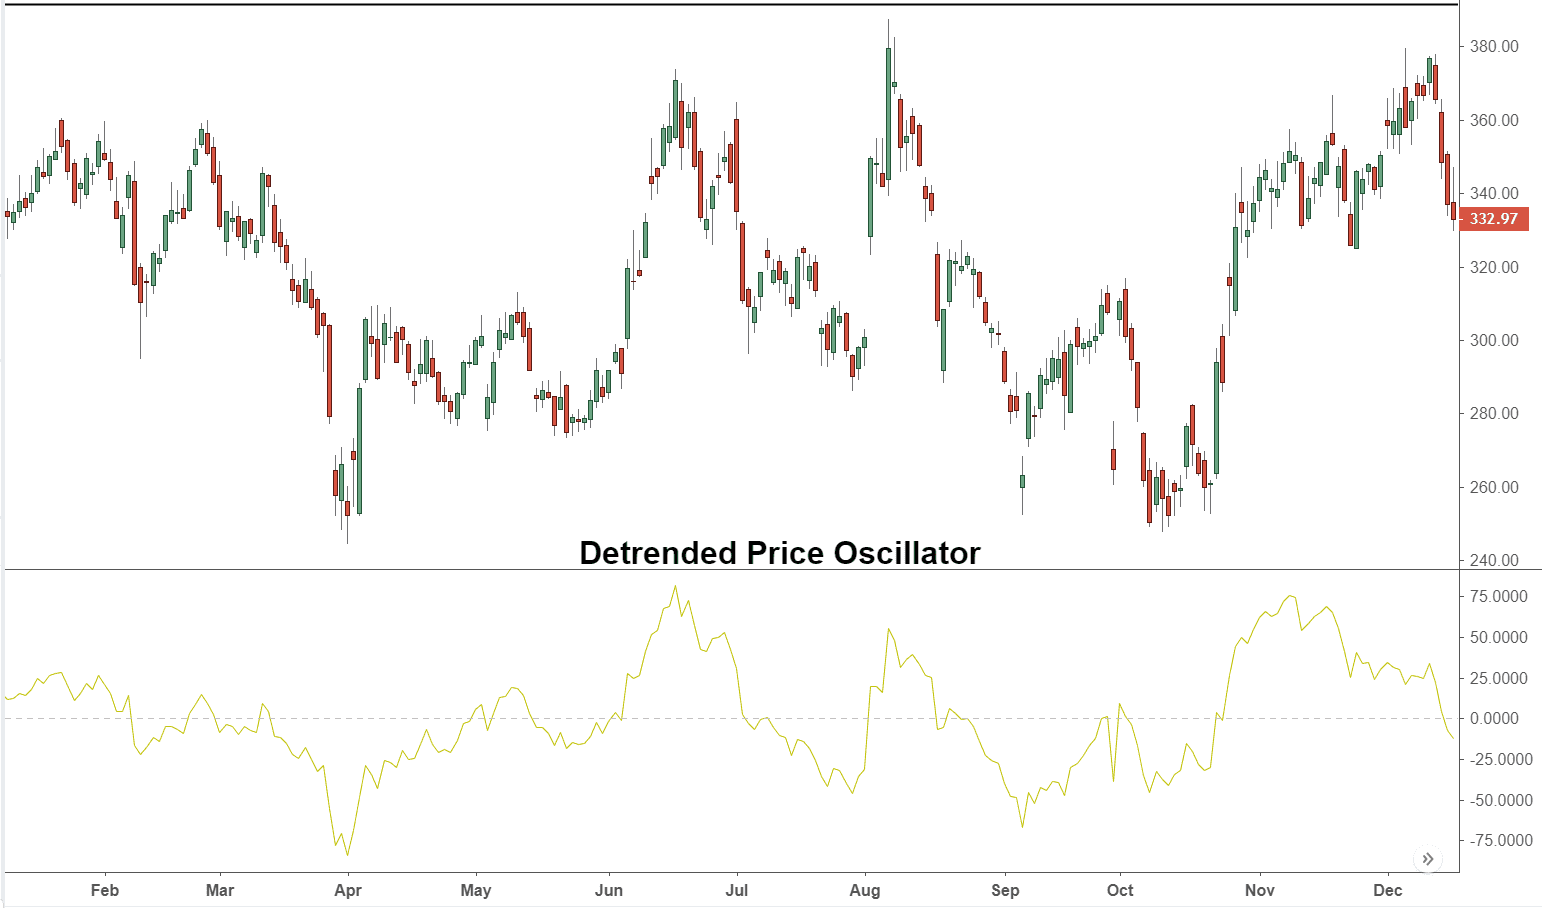 Detrended Price Oscillator (DPO) Definition and Uses